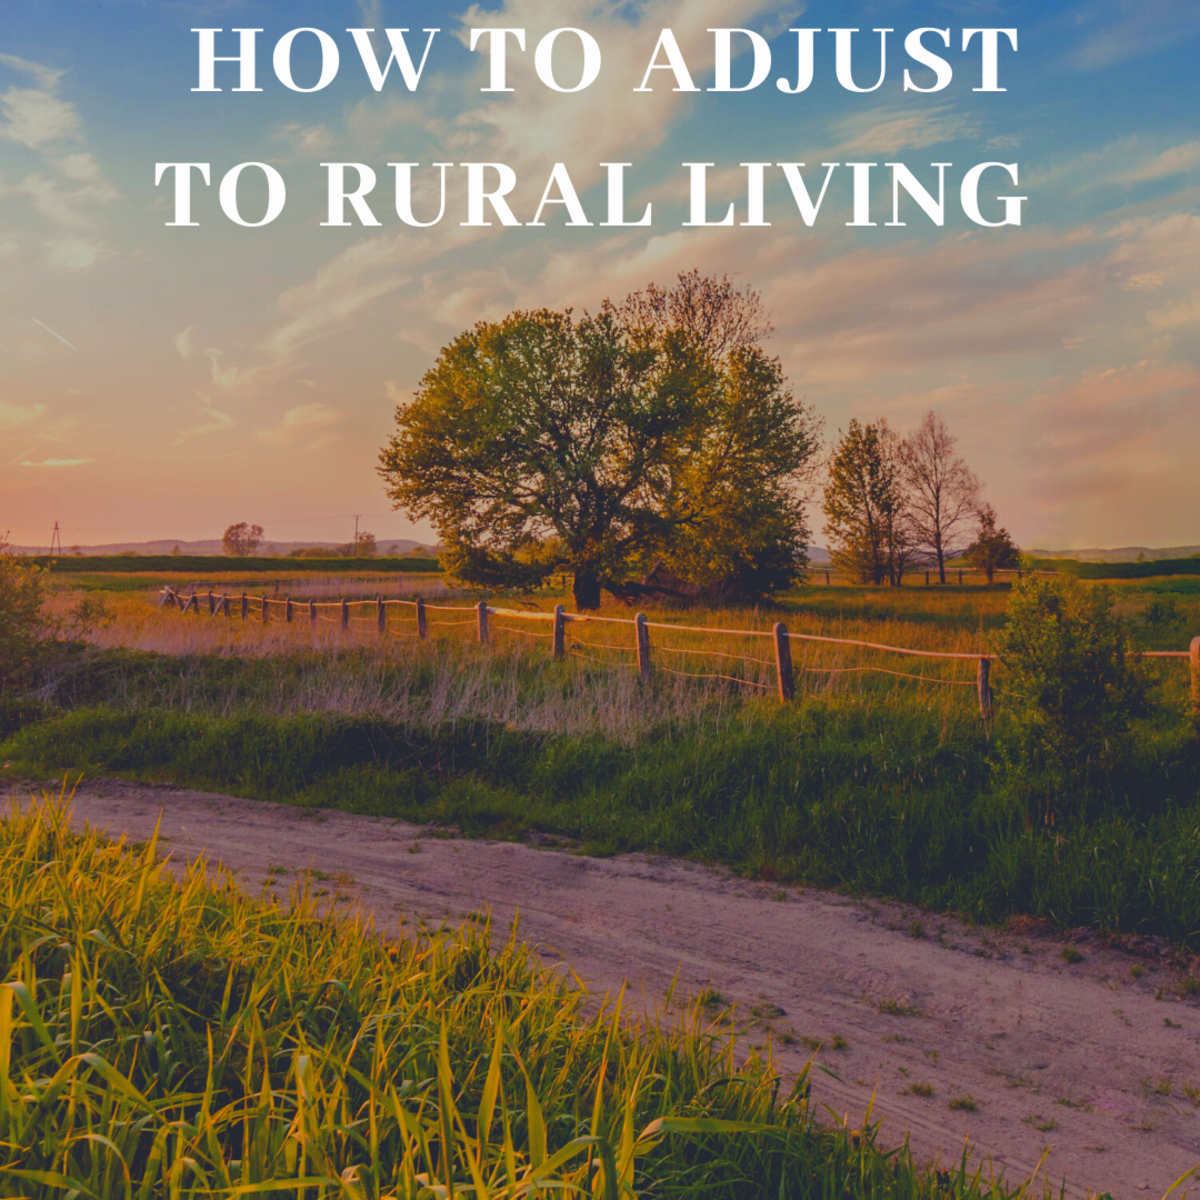 Adjusting to country life can be difficult. Read on to to learn tips and tricks for doing it right.